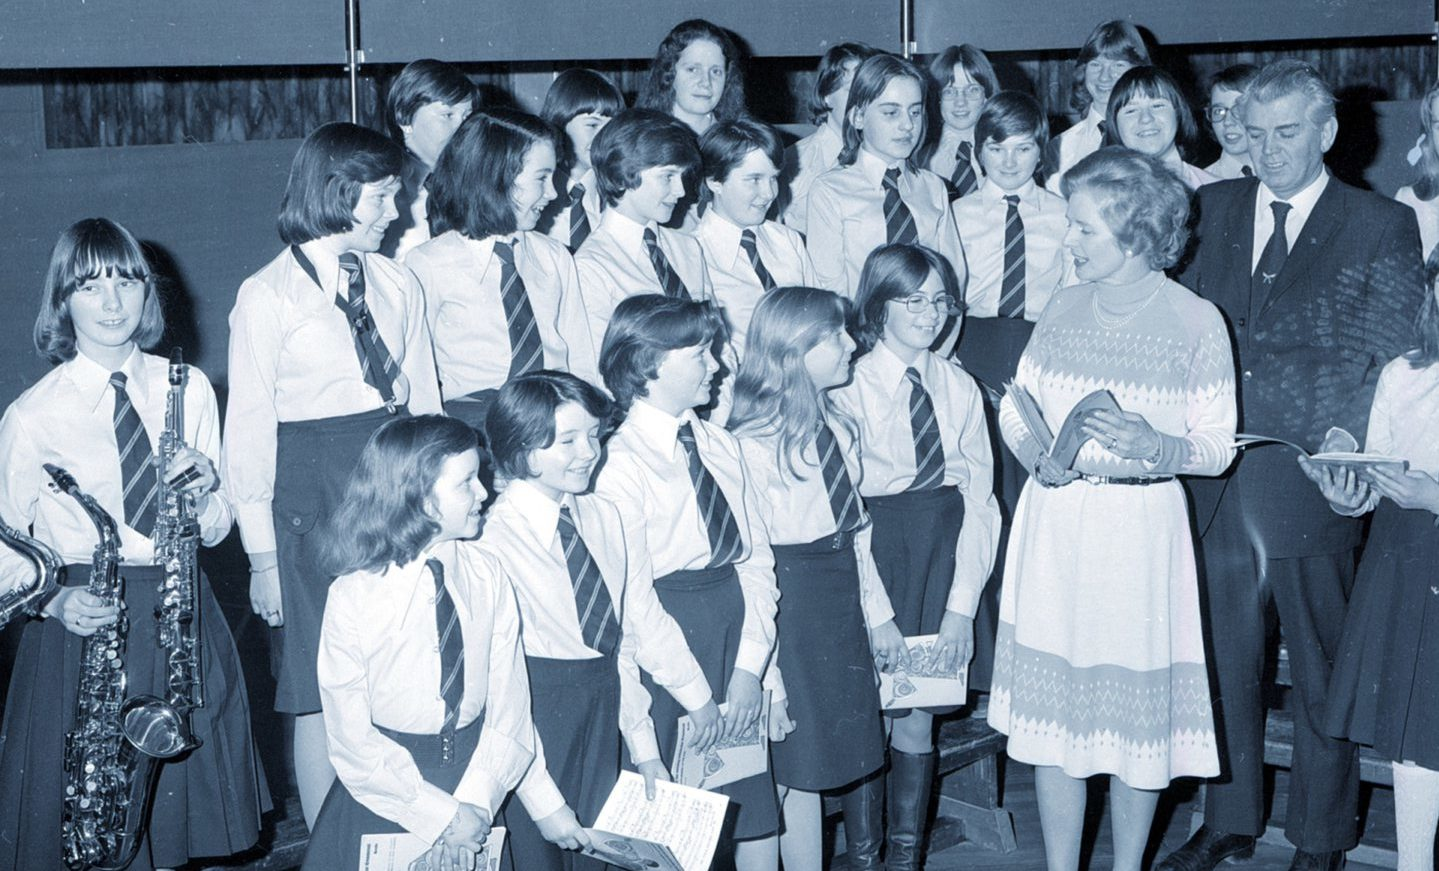 Members of the Bridge of Don Academy Junior Choir chat with Tory Party leader Mrs Margaret Thatcher in January 1978. Mrs Thatcher was in the north-east on a fast-moving tour which included visits to Dyce, Cults, Inverurie and Bridge of Don. She also spoke to Tory Party workers from North and South Aberdeen at a meeting in the Amatola Hotel.